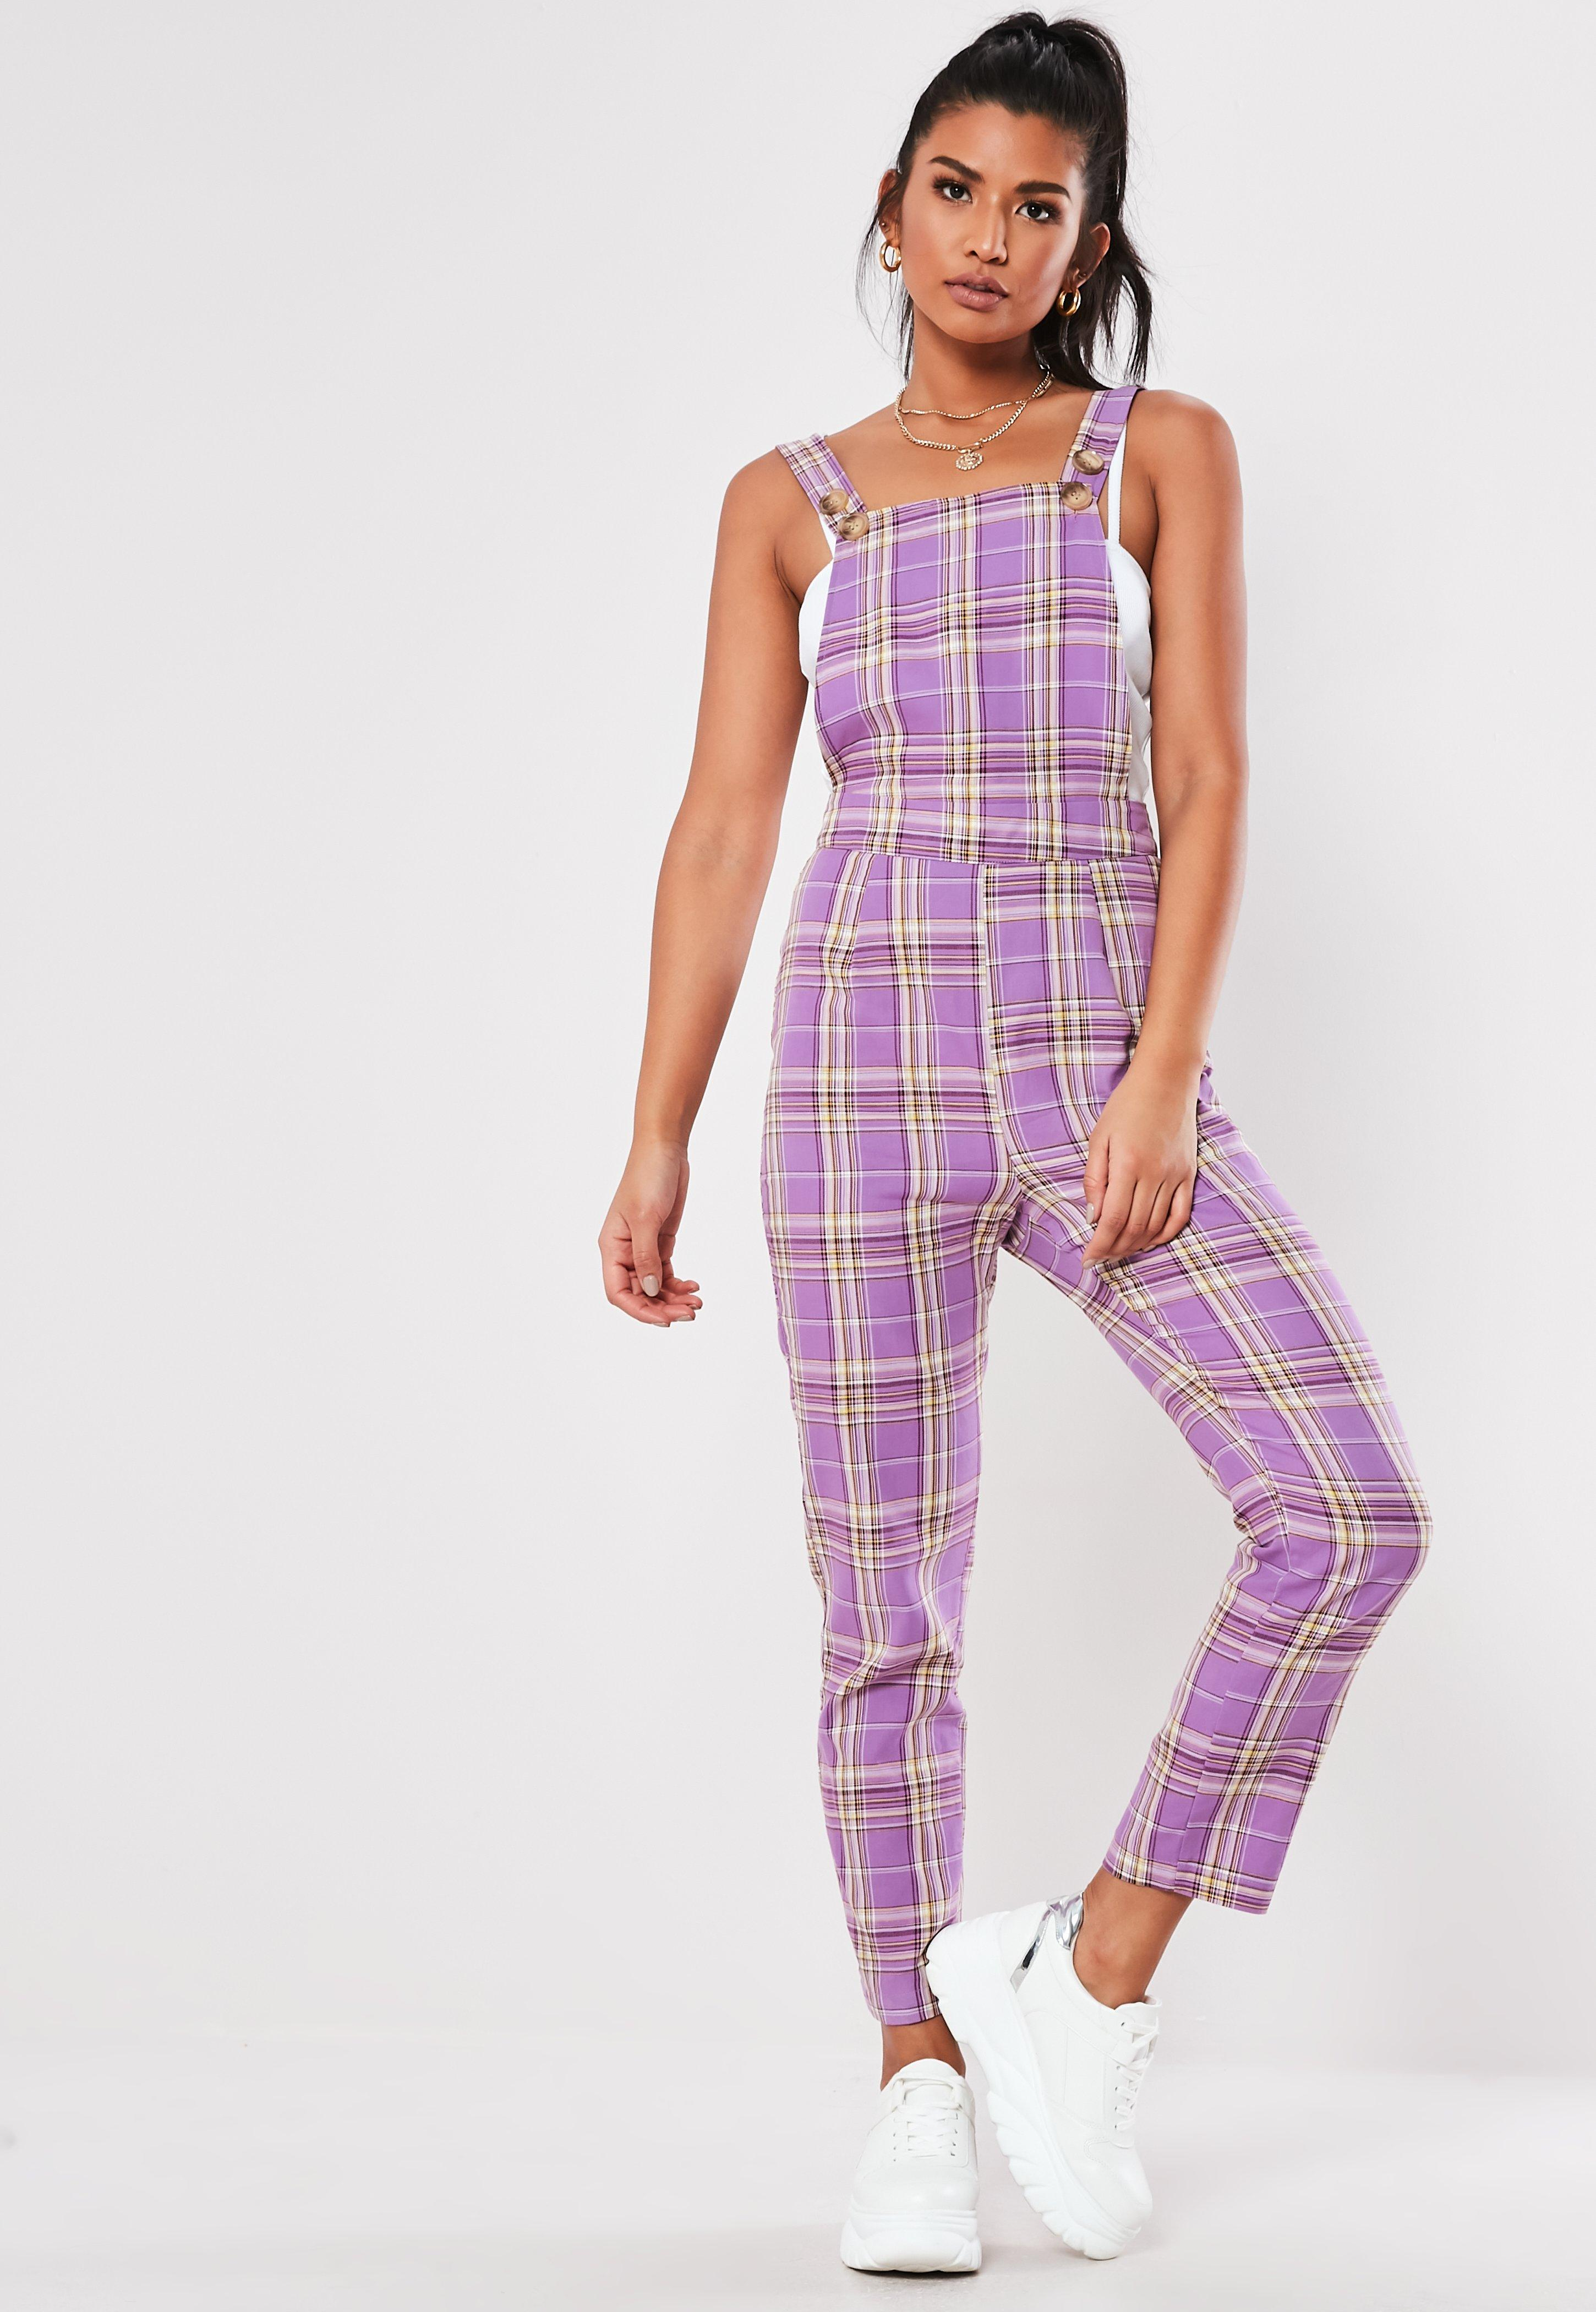 6d23f1451392 90s Fashion & Clothes - Shop 90s Grunge | Missguided